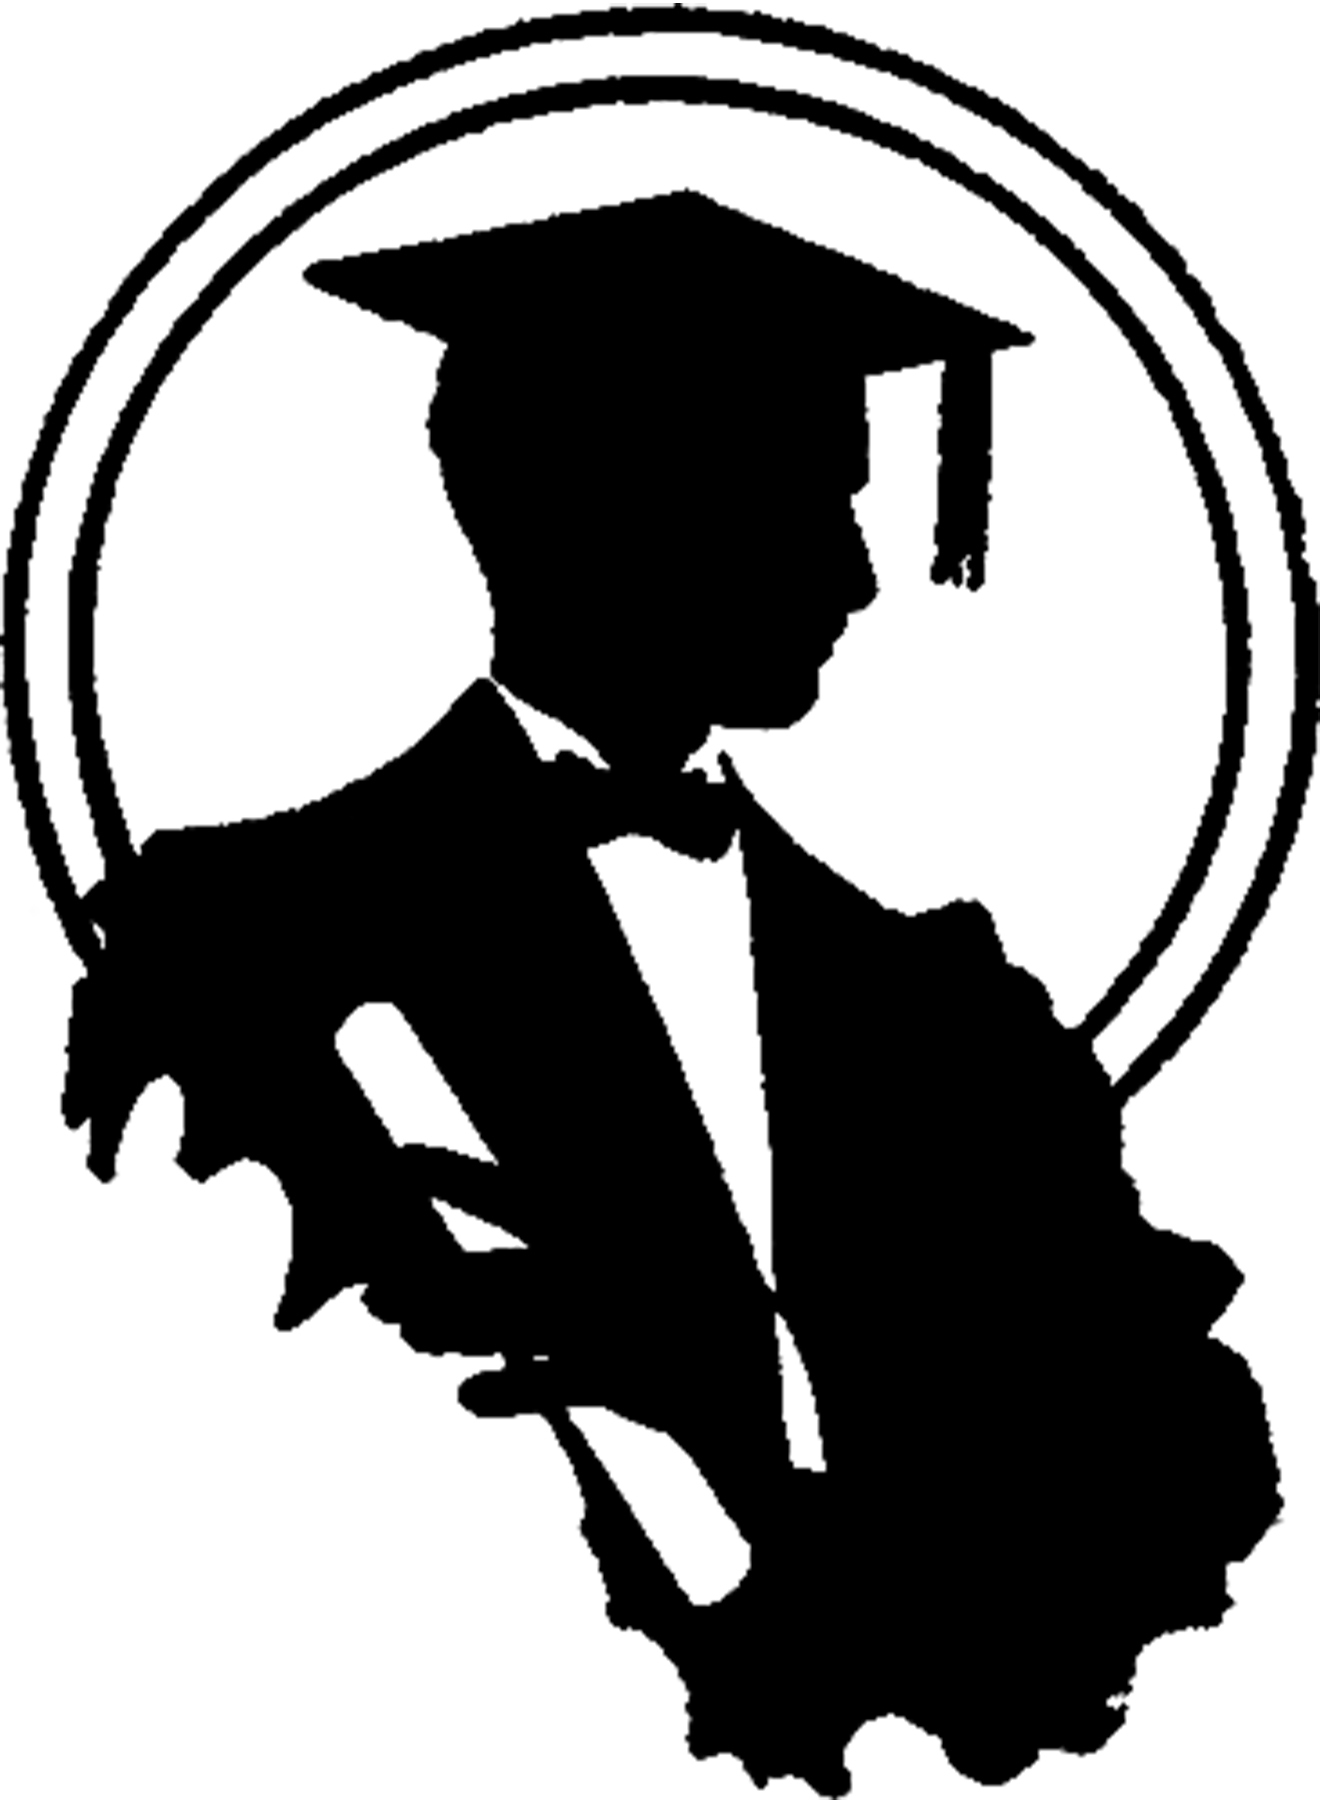 Graduation Silhouette Image - Young Man - The Graphics Fairy